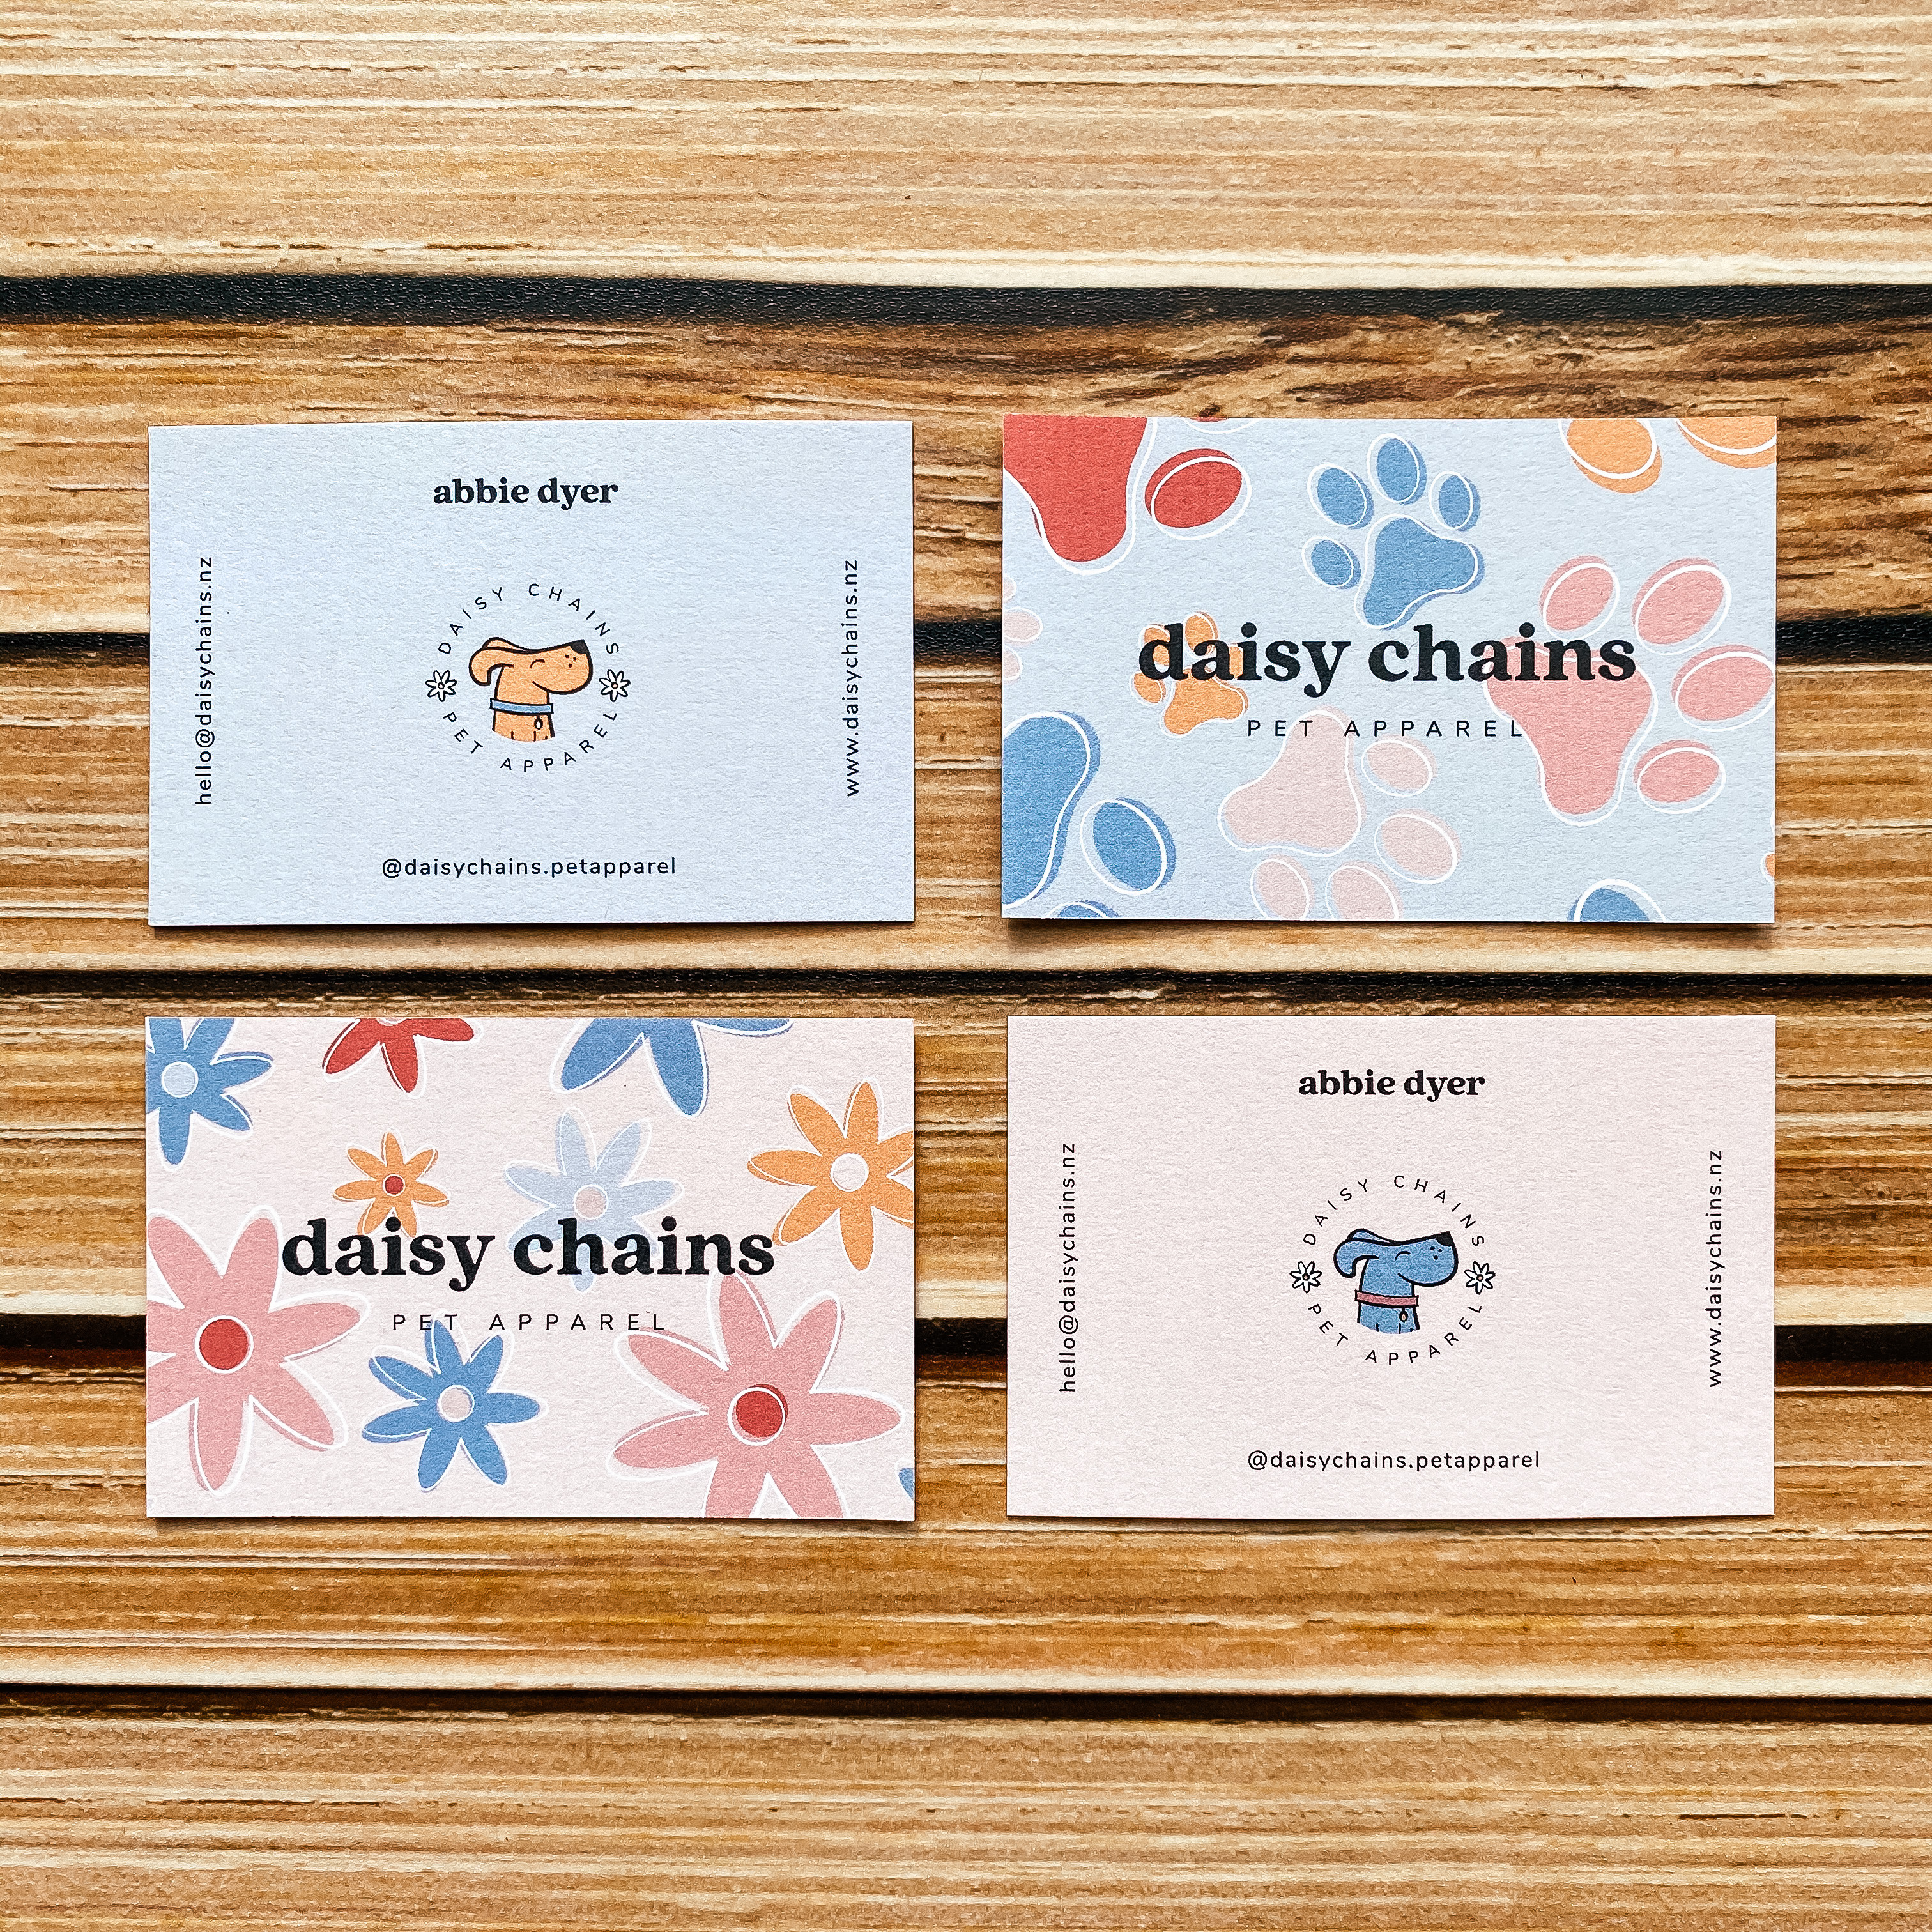 Daisy Chains Pet Apparel business card